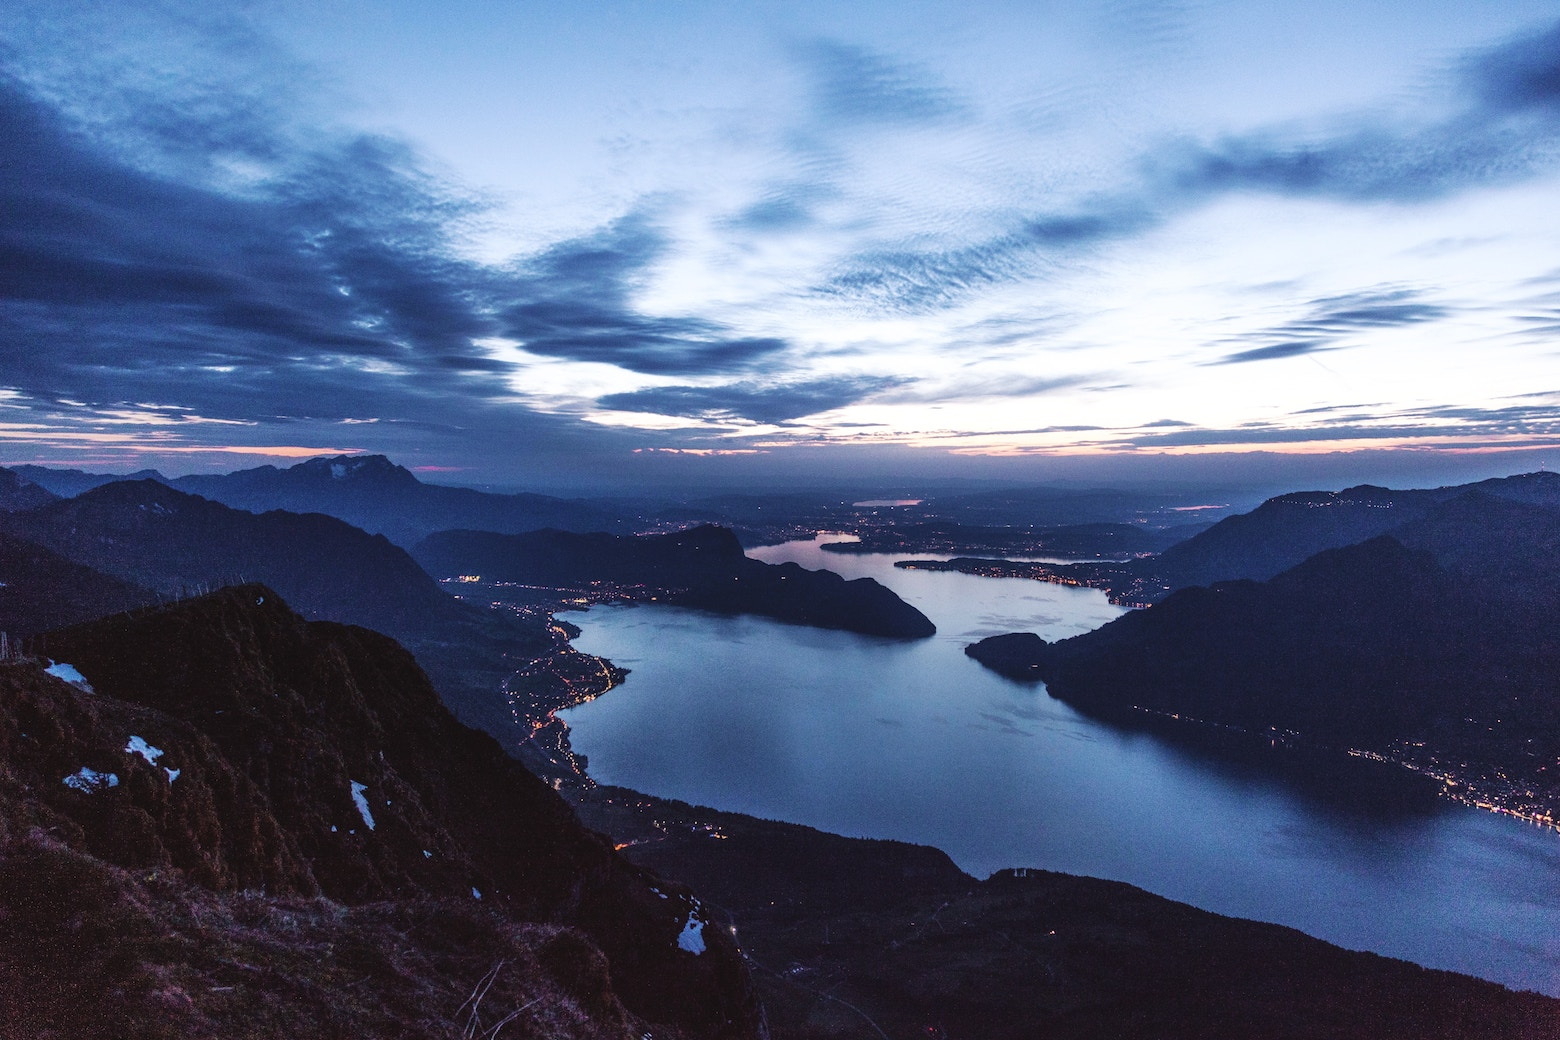 Look over Lake Lucerne by Dino Reichmuth on Unsplash